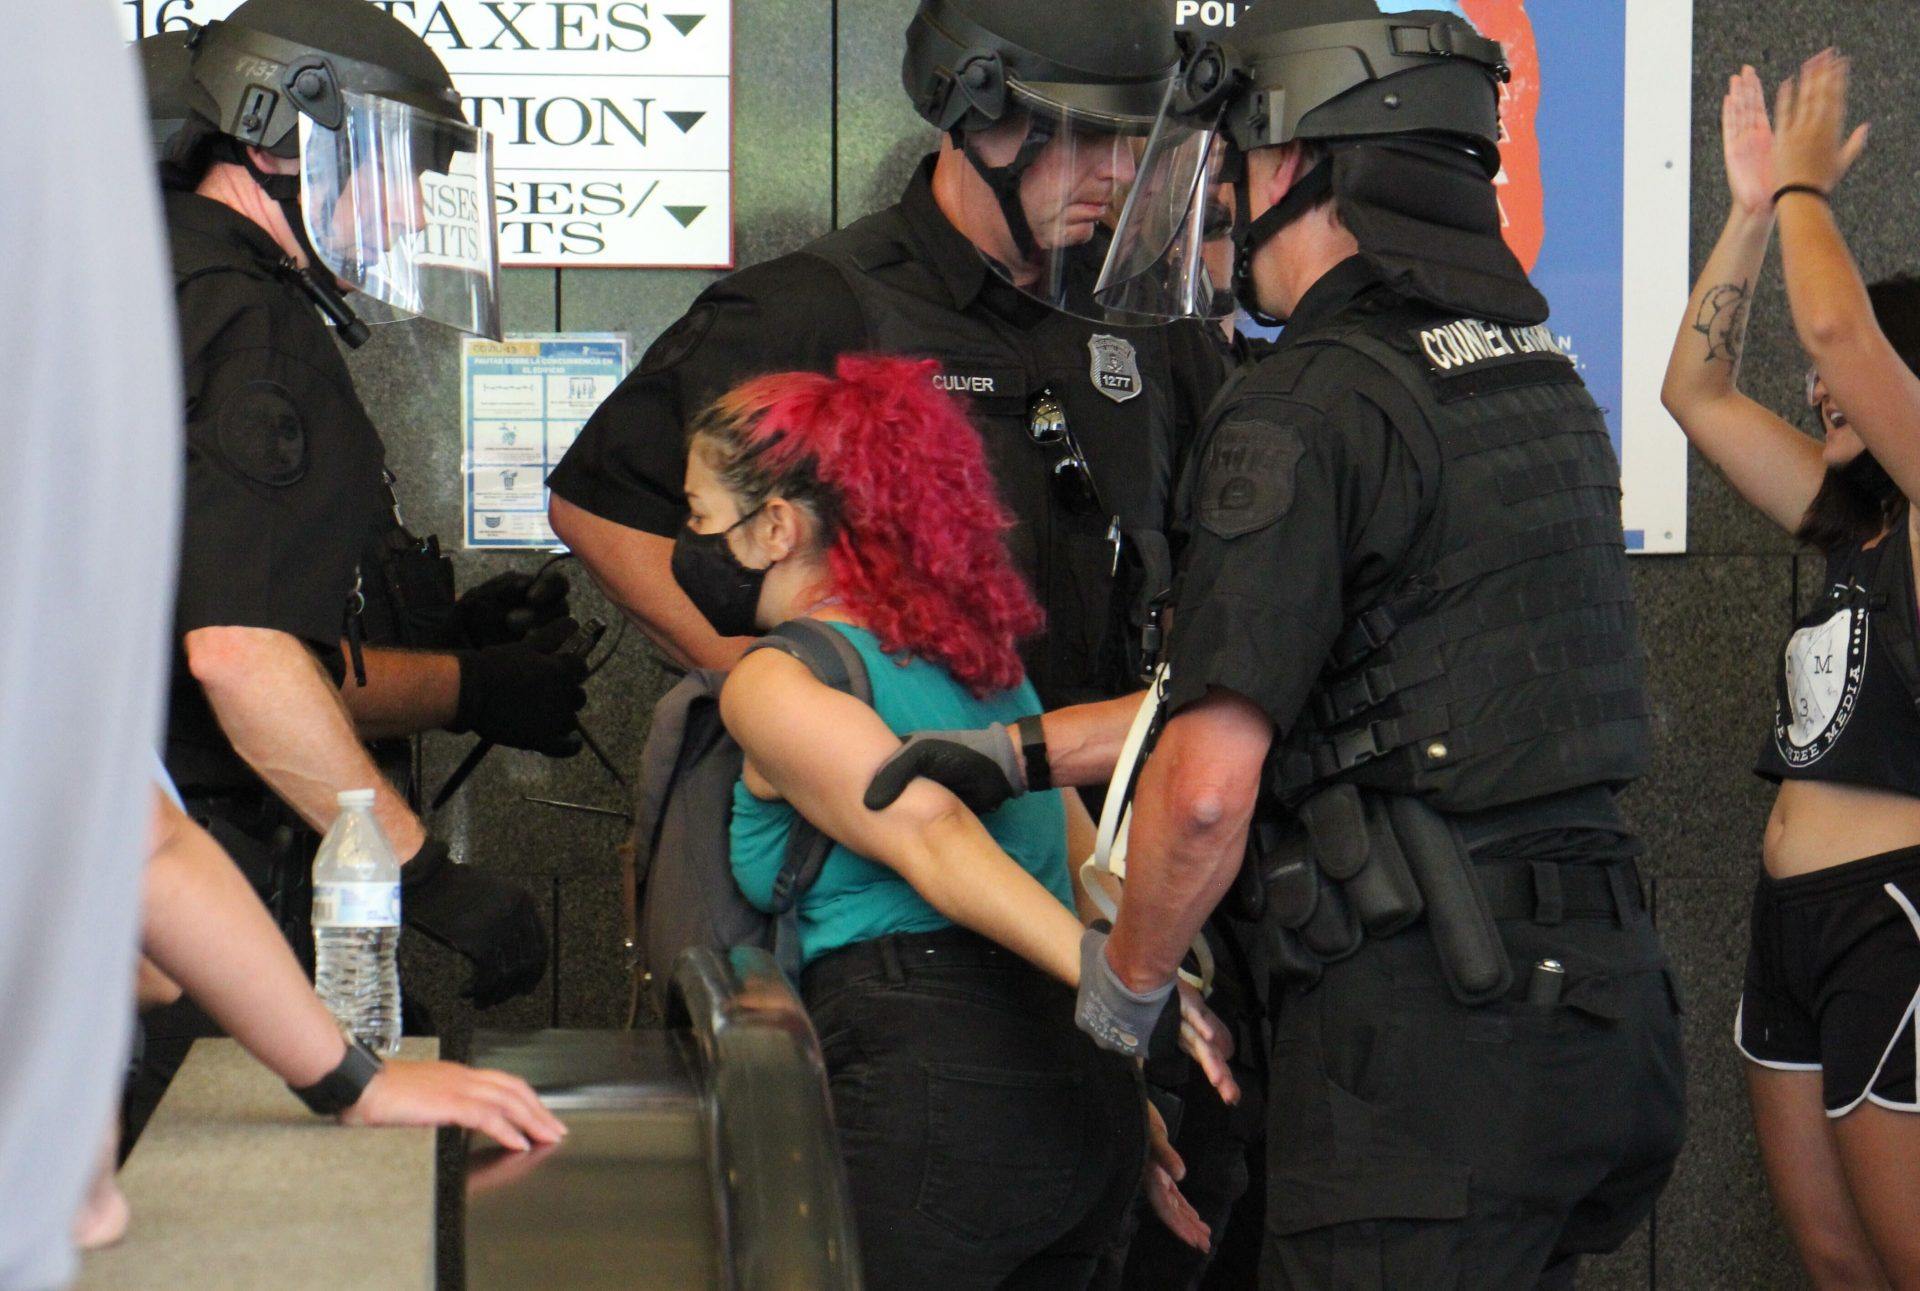 Philadelphia police arrest protesters inside the Municipal Services Building.